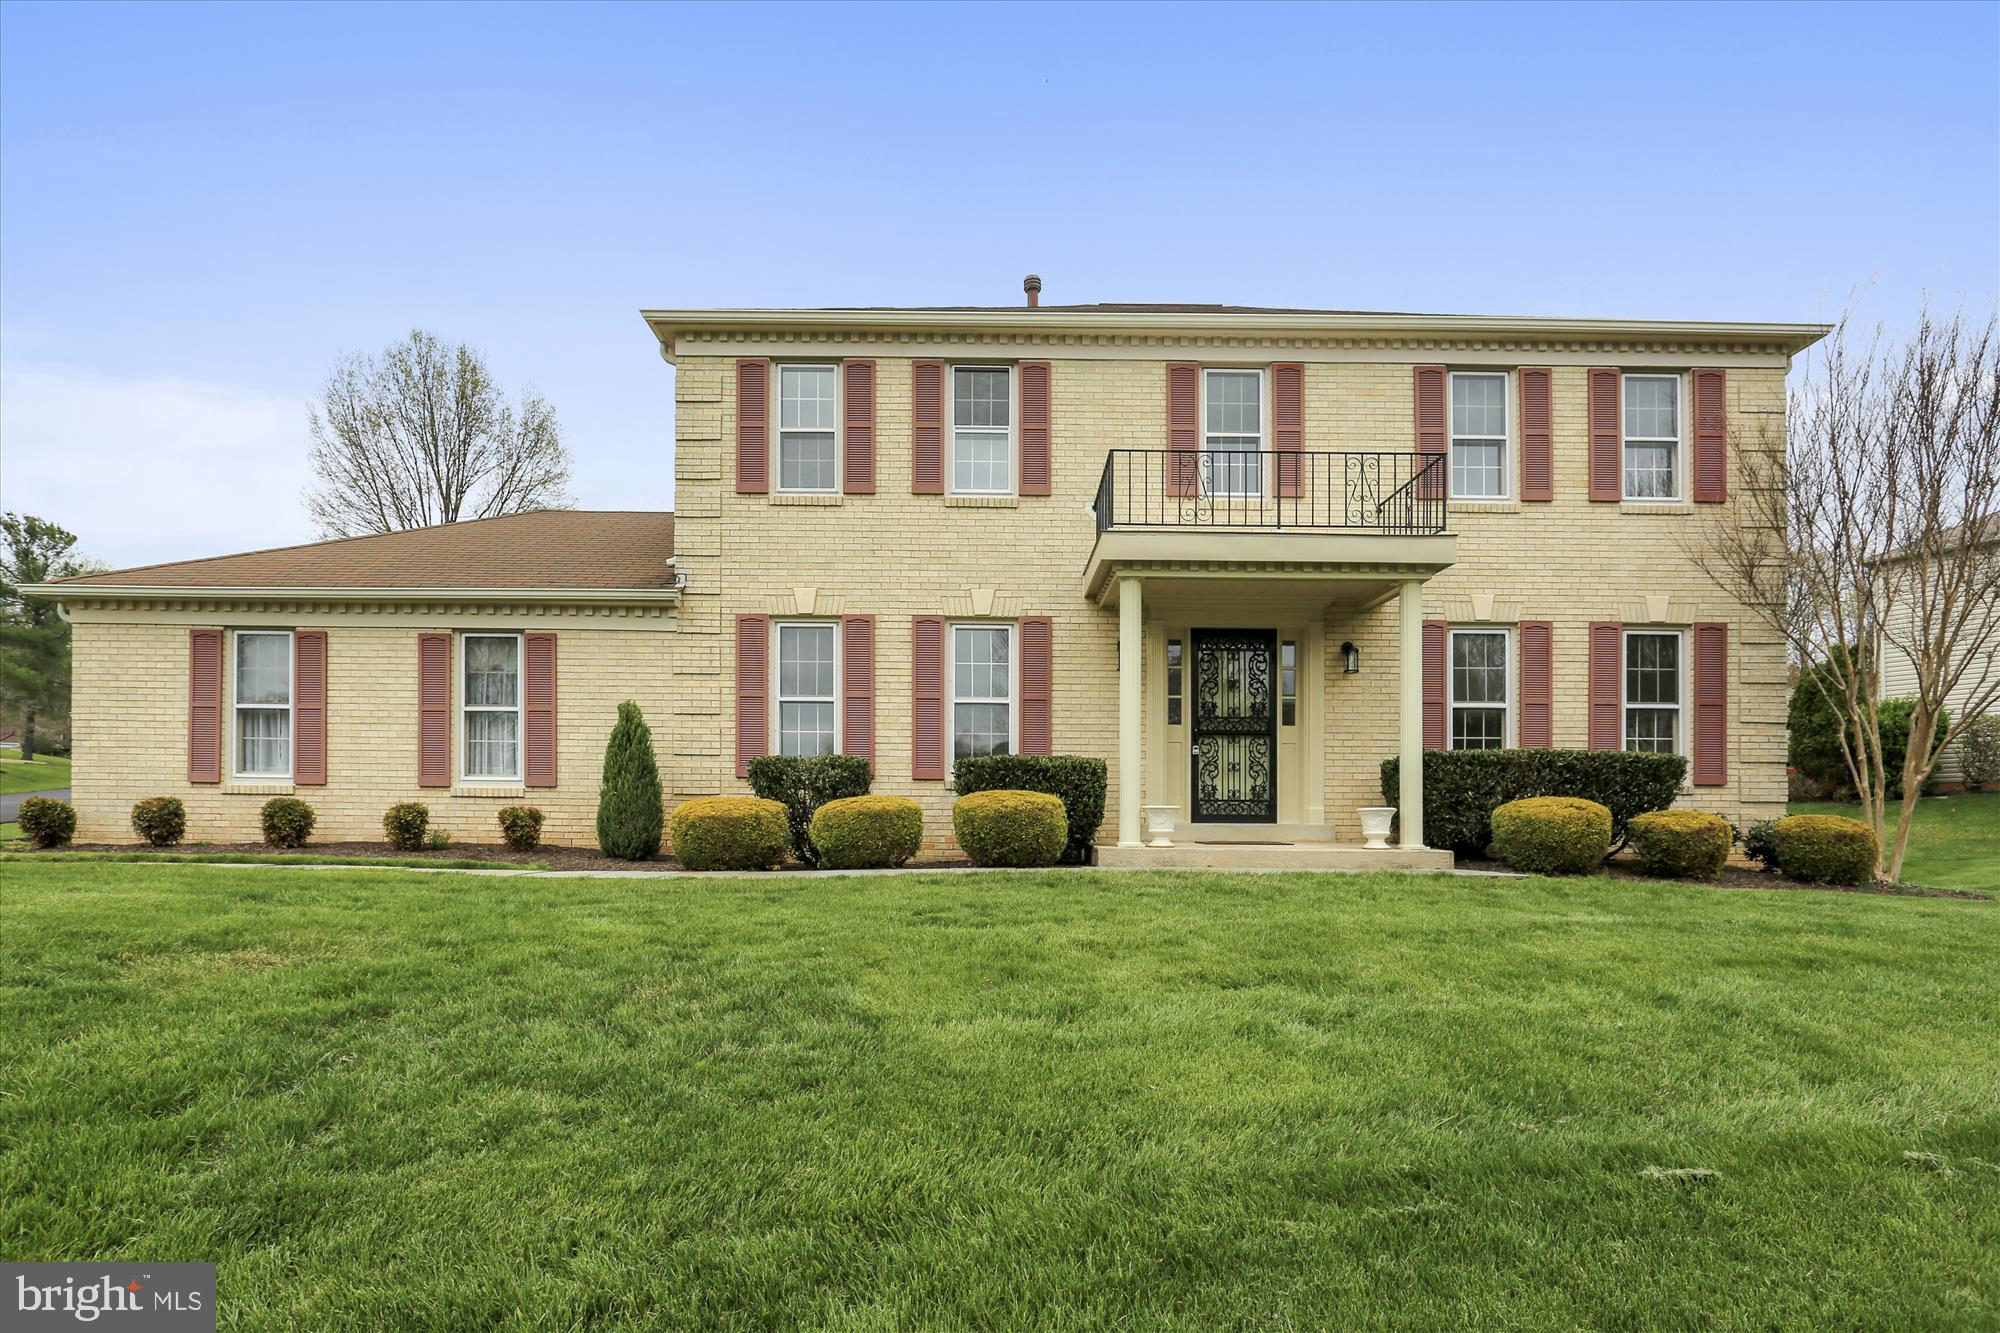 Bright & Sunny Southern Exposure*Blonde Brick*Two story hardwood foyer*New Granite Counters & SS Appliances*New Carpeting*Freshly Painted*Family Room w/blonde brick fireplace*Recent Roof & High Efficiency Gas Furnace & CAC*Extra Clean One Owner Home*One Year HMS Warranty*Move in Condition